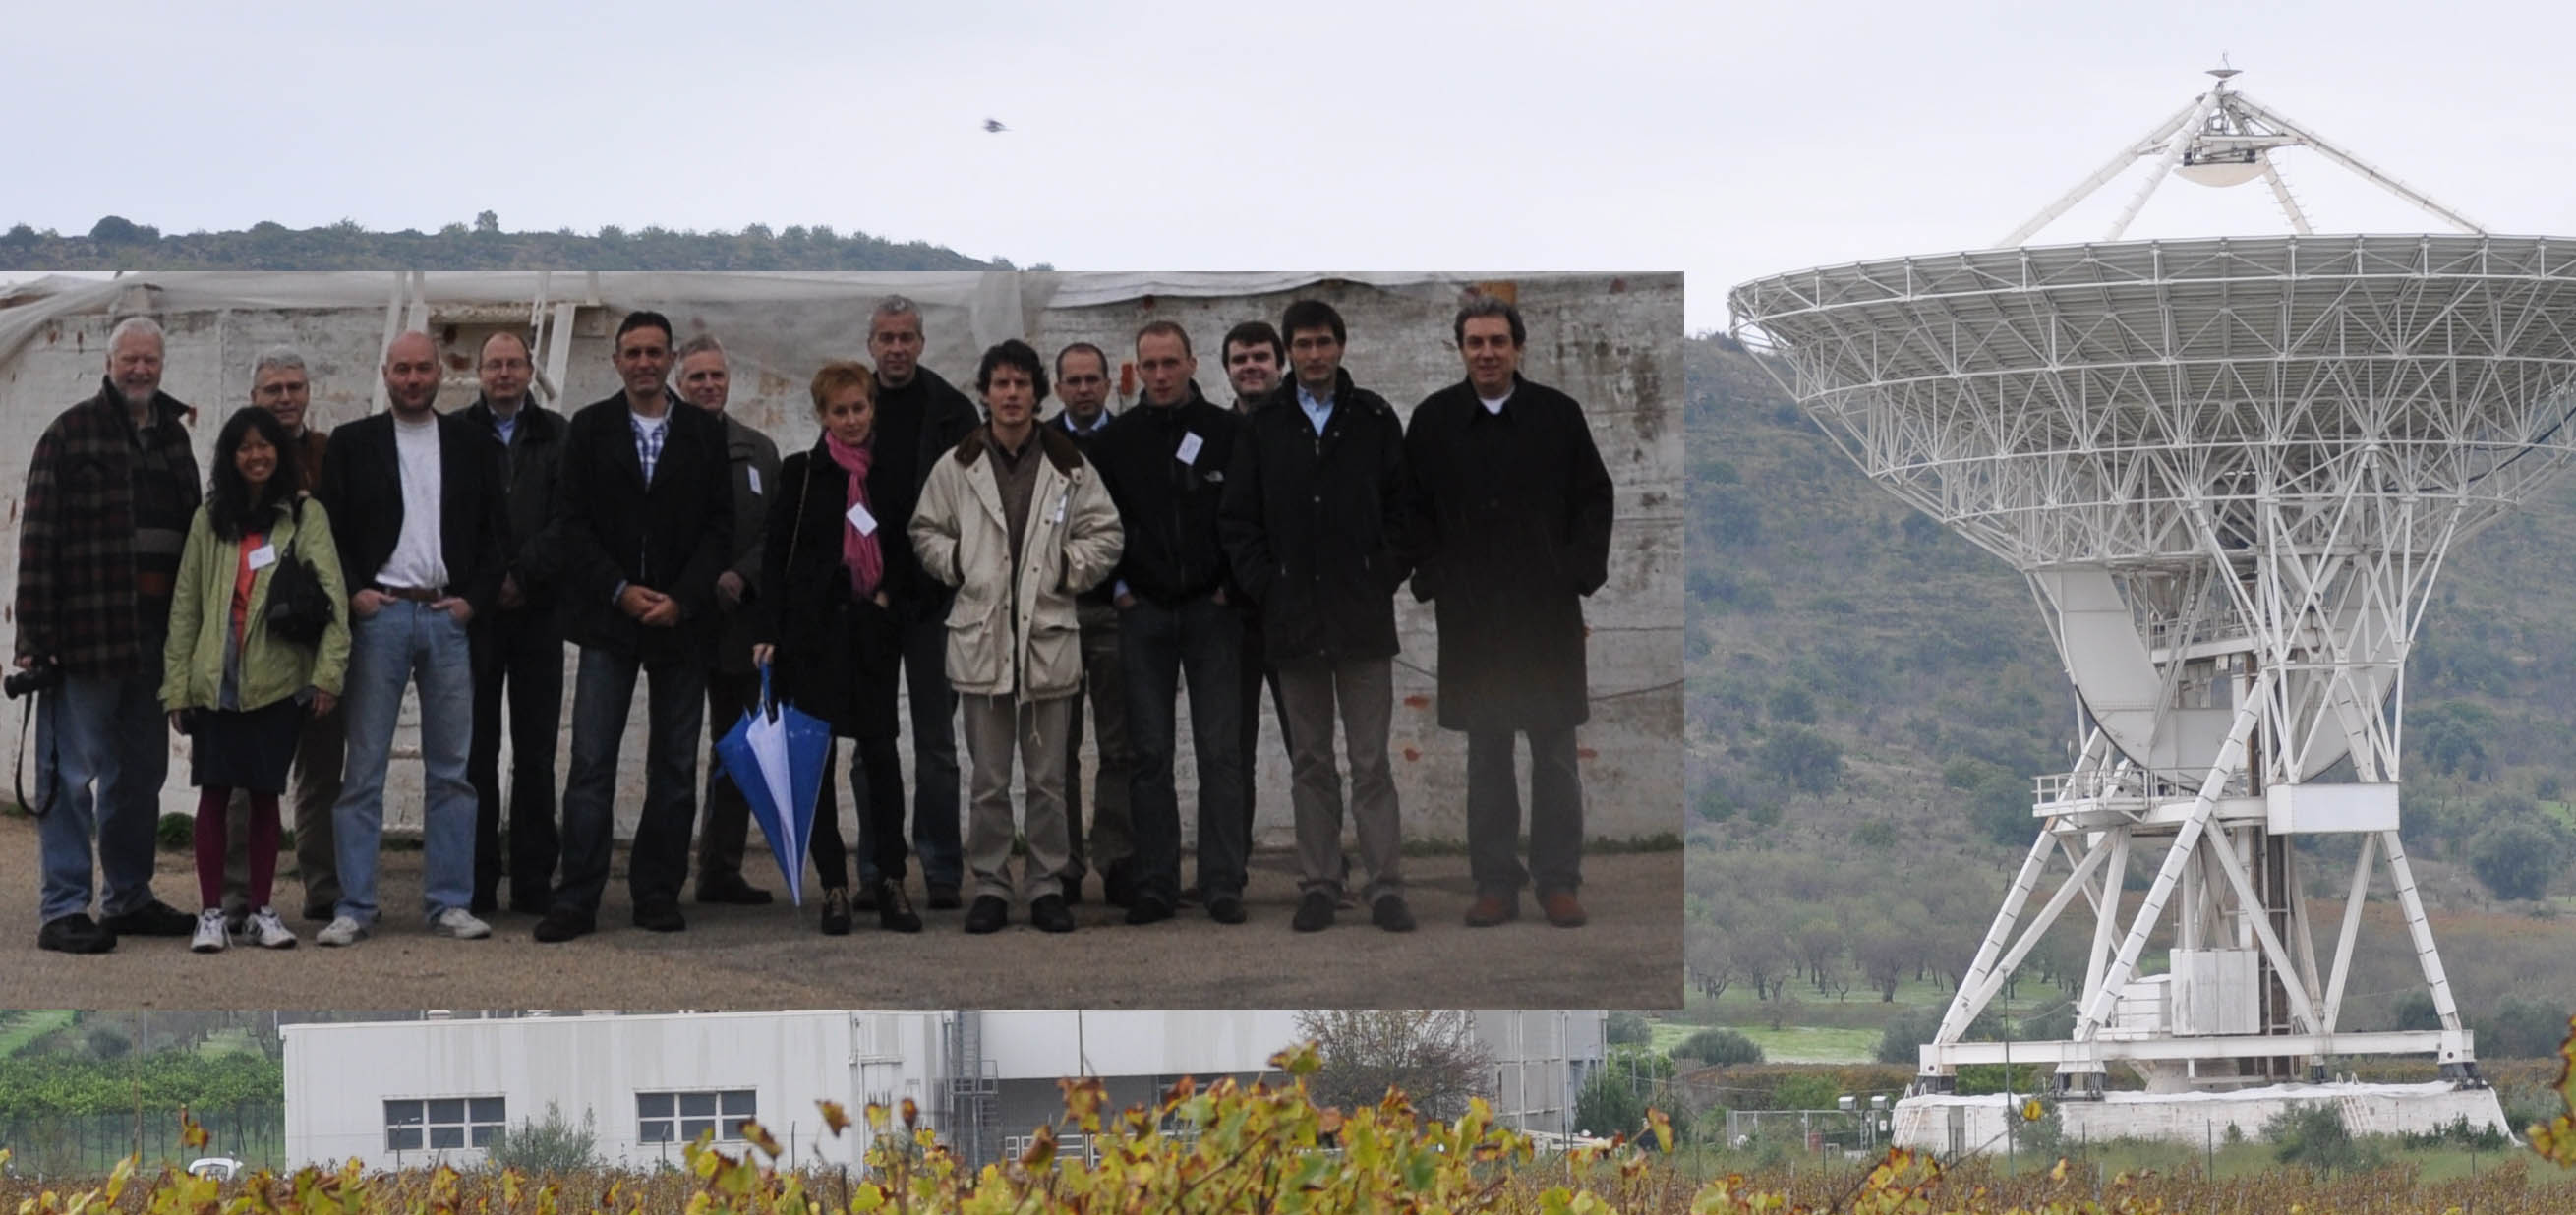 19th meeting of FM44 participants of FM44 visiting Noto radioastronomy observatory